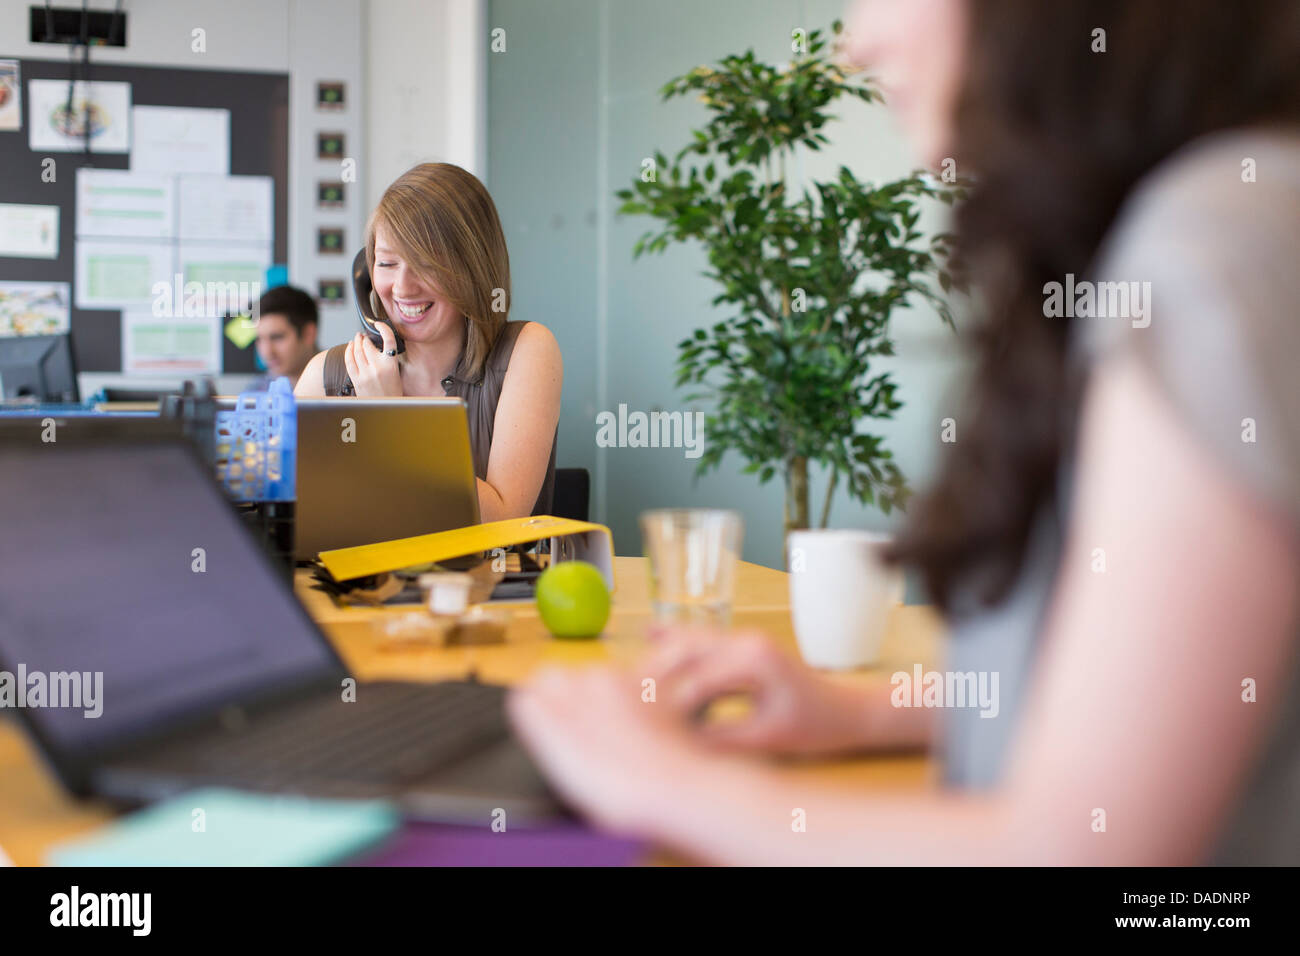 Young woman using telephone in busy creative office - Stock Image